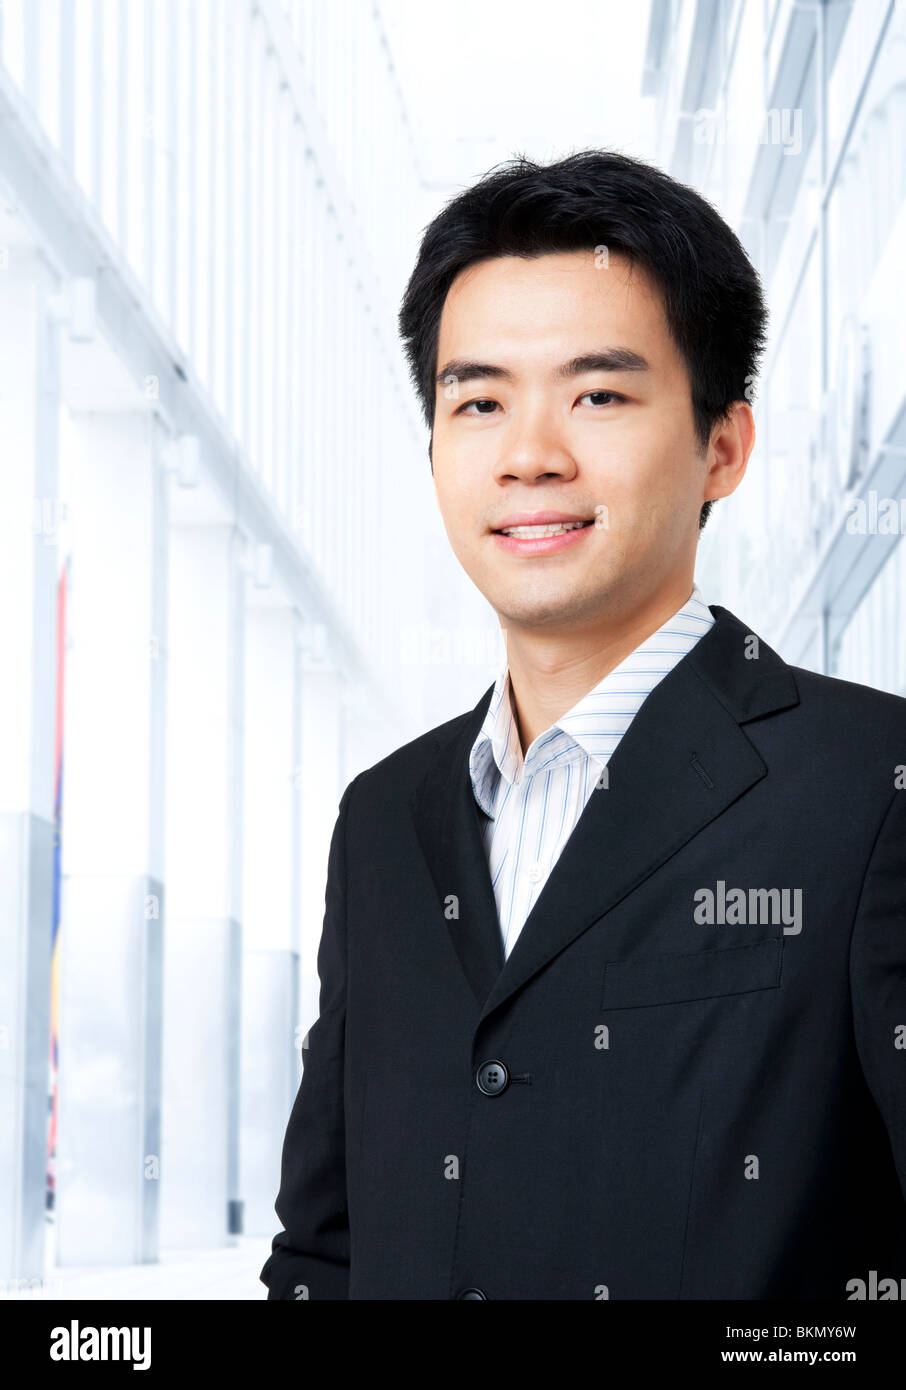 590d81868000 Portrait of young Asian executive in black suit, standing in front of a  modern building